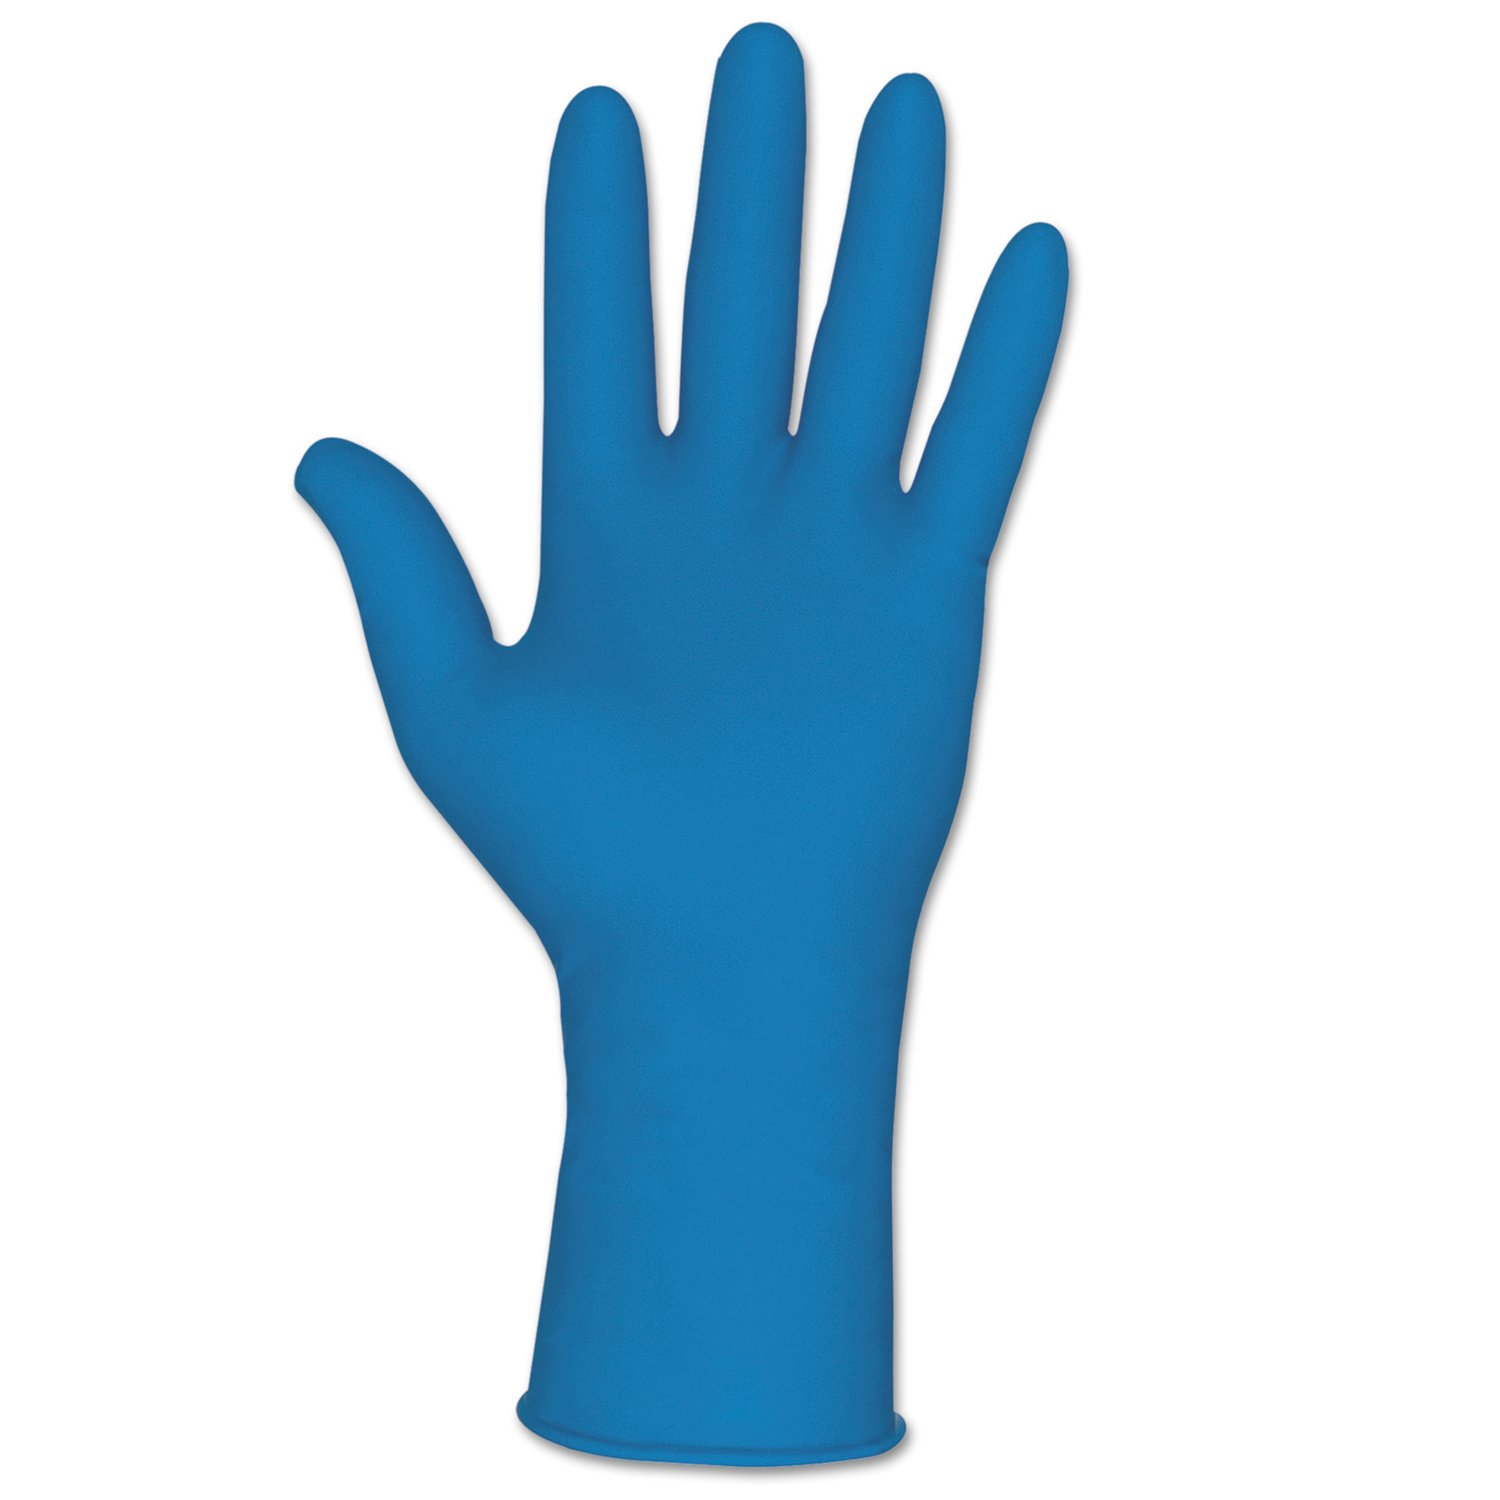 Memphis Glove 5049XL Disposable Latex Gloves, Textured Grip, Powder Free, 11 mil, X-Large, Blue (Pack of 500)